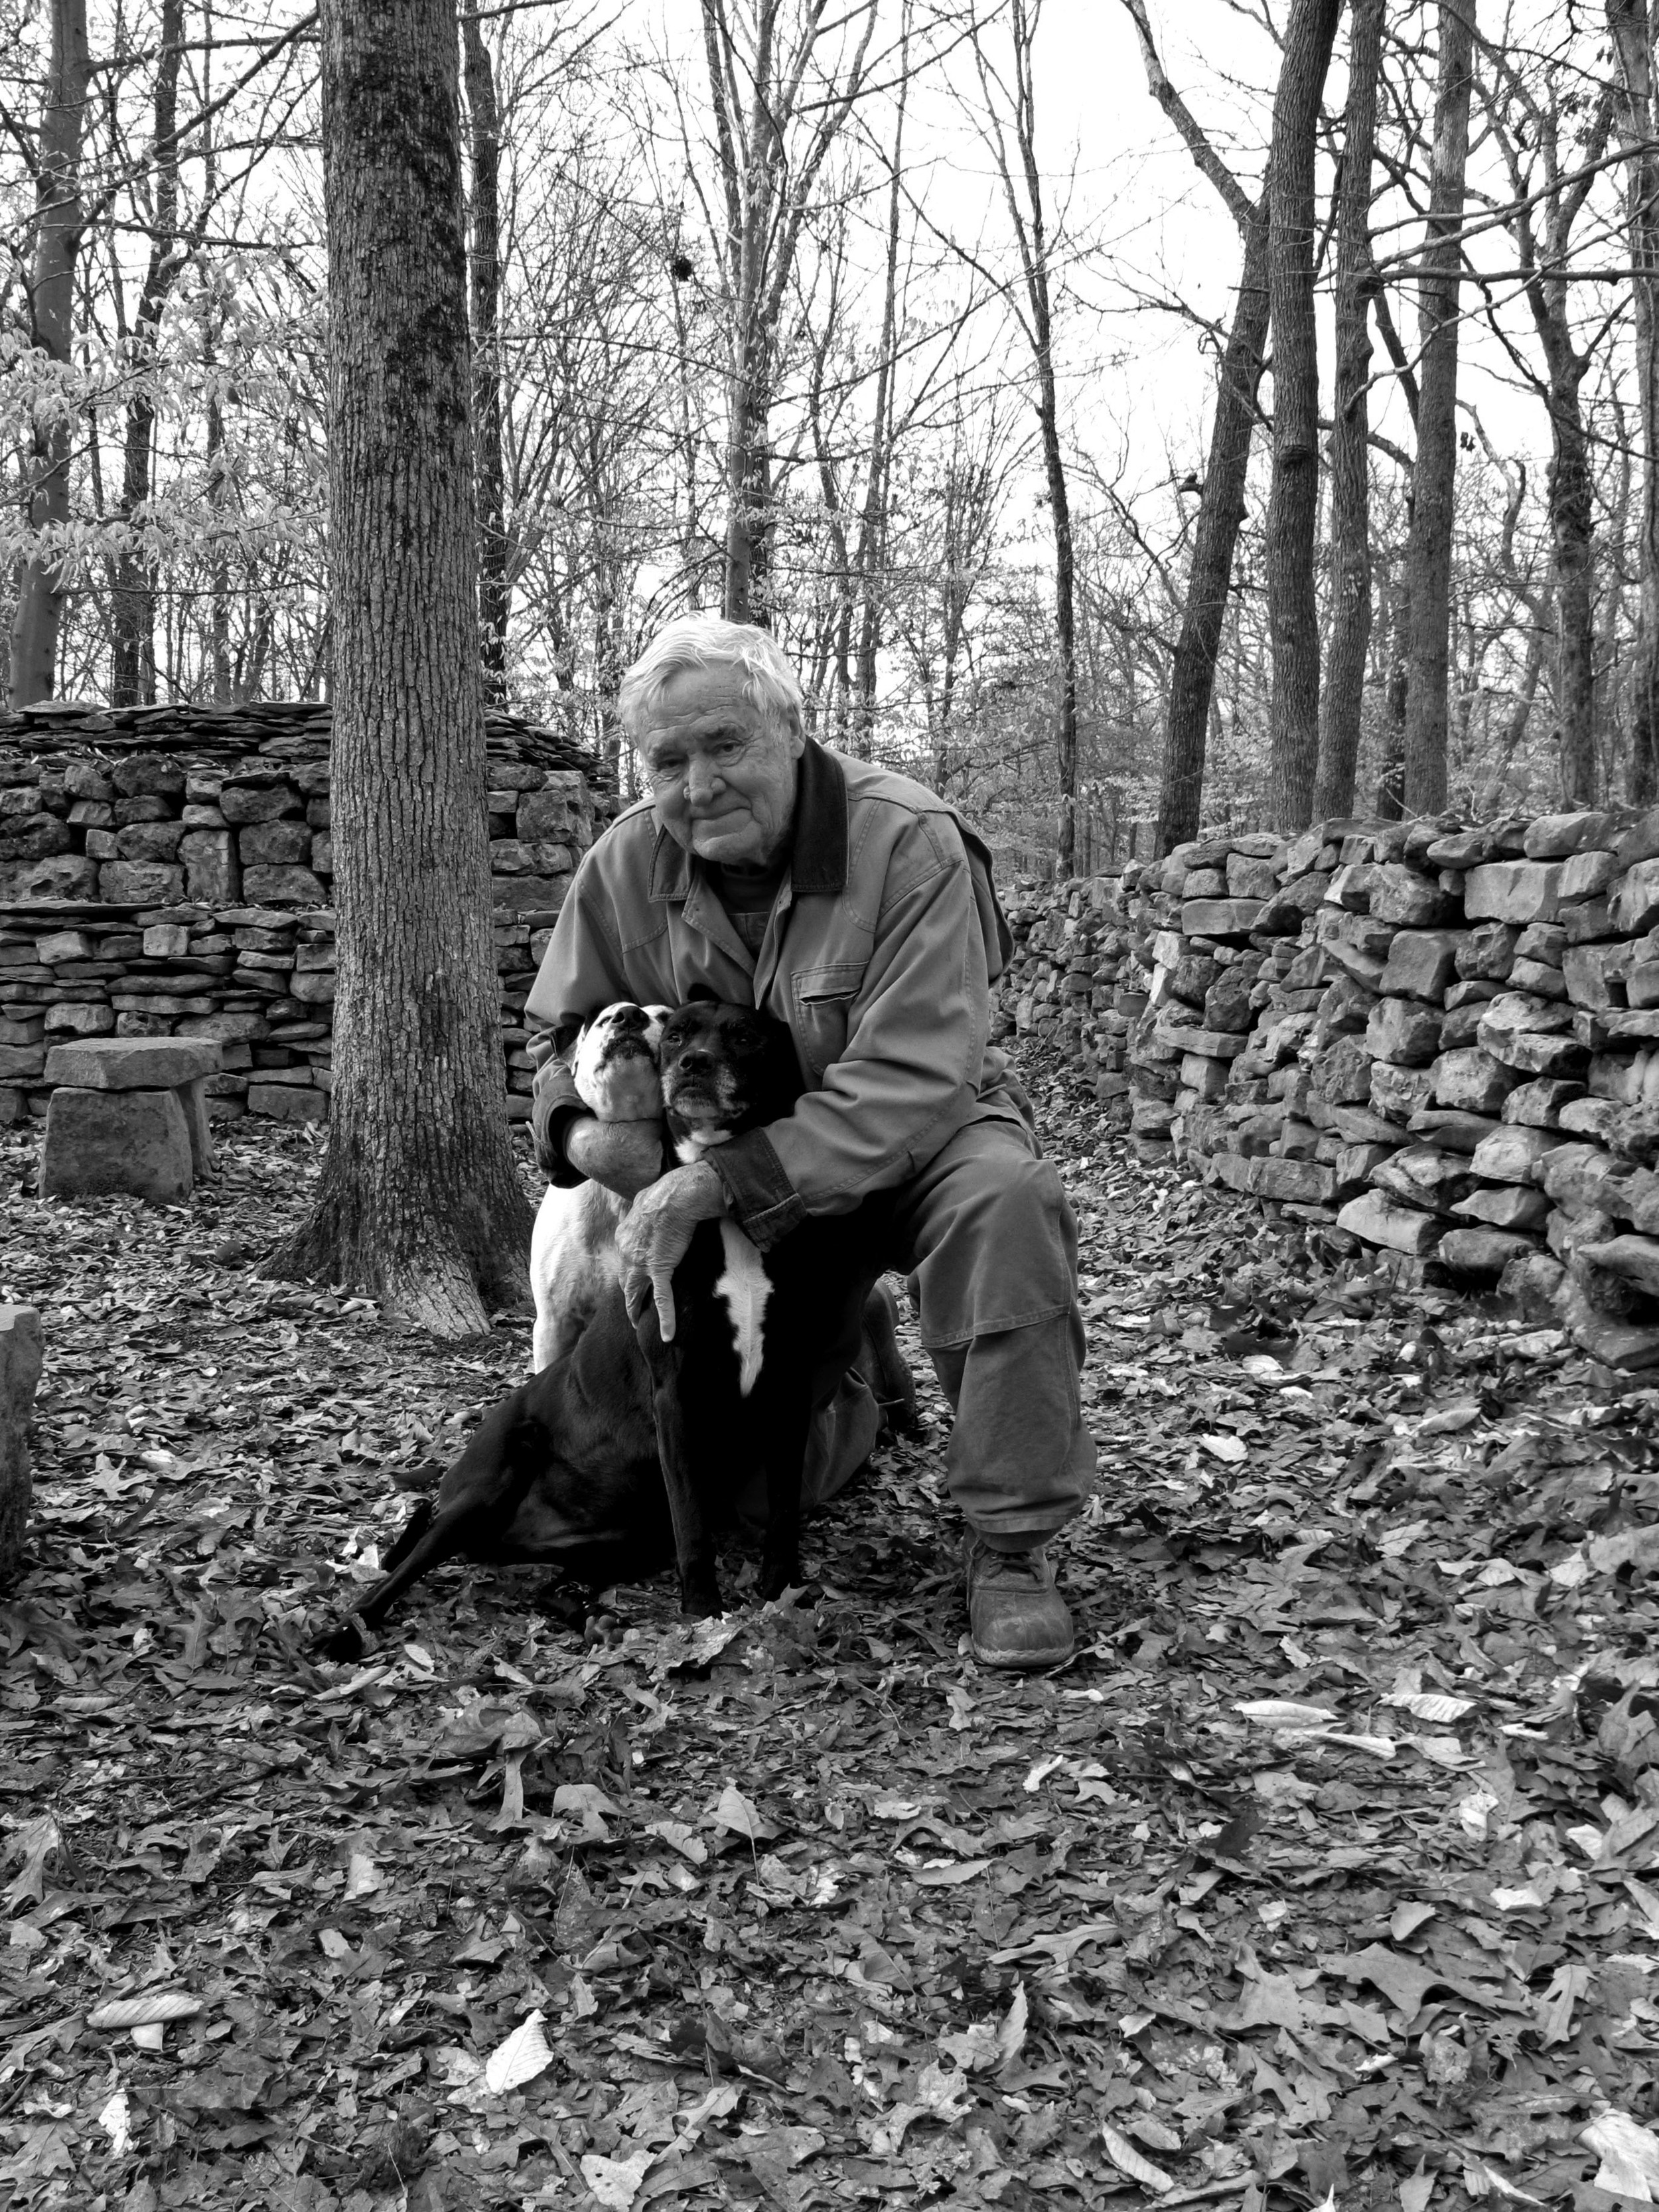 When Tom conceived of his memorial to his great-great-grandmother Te-lah-nay 25 years ago, he did not start with sketches or plans. He began by picking rocks that local farmers, clearing their land of hedgerows, had dumped by the side of the road. For 28 years has kept careful track of the truckloads, and estimates that the wall consists of 9 million pounds of stone. Each stone has been touched three times: once when he selects them and places them in his pick up truck, once at home when he unloads them into his wheelbarrow, and once when he positions each rock in The Wall. By his count, he has lifted 27 million pounds of stones, gone through three pick-up trucks, 22 wheelbarrows, and 3,900 pairs of gloves. He believes he must hold the world record for mashed fingers.